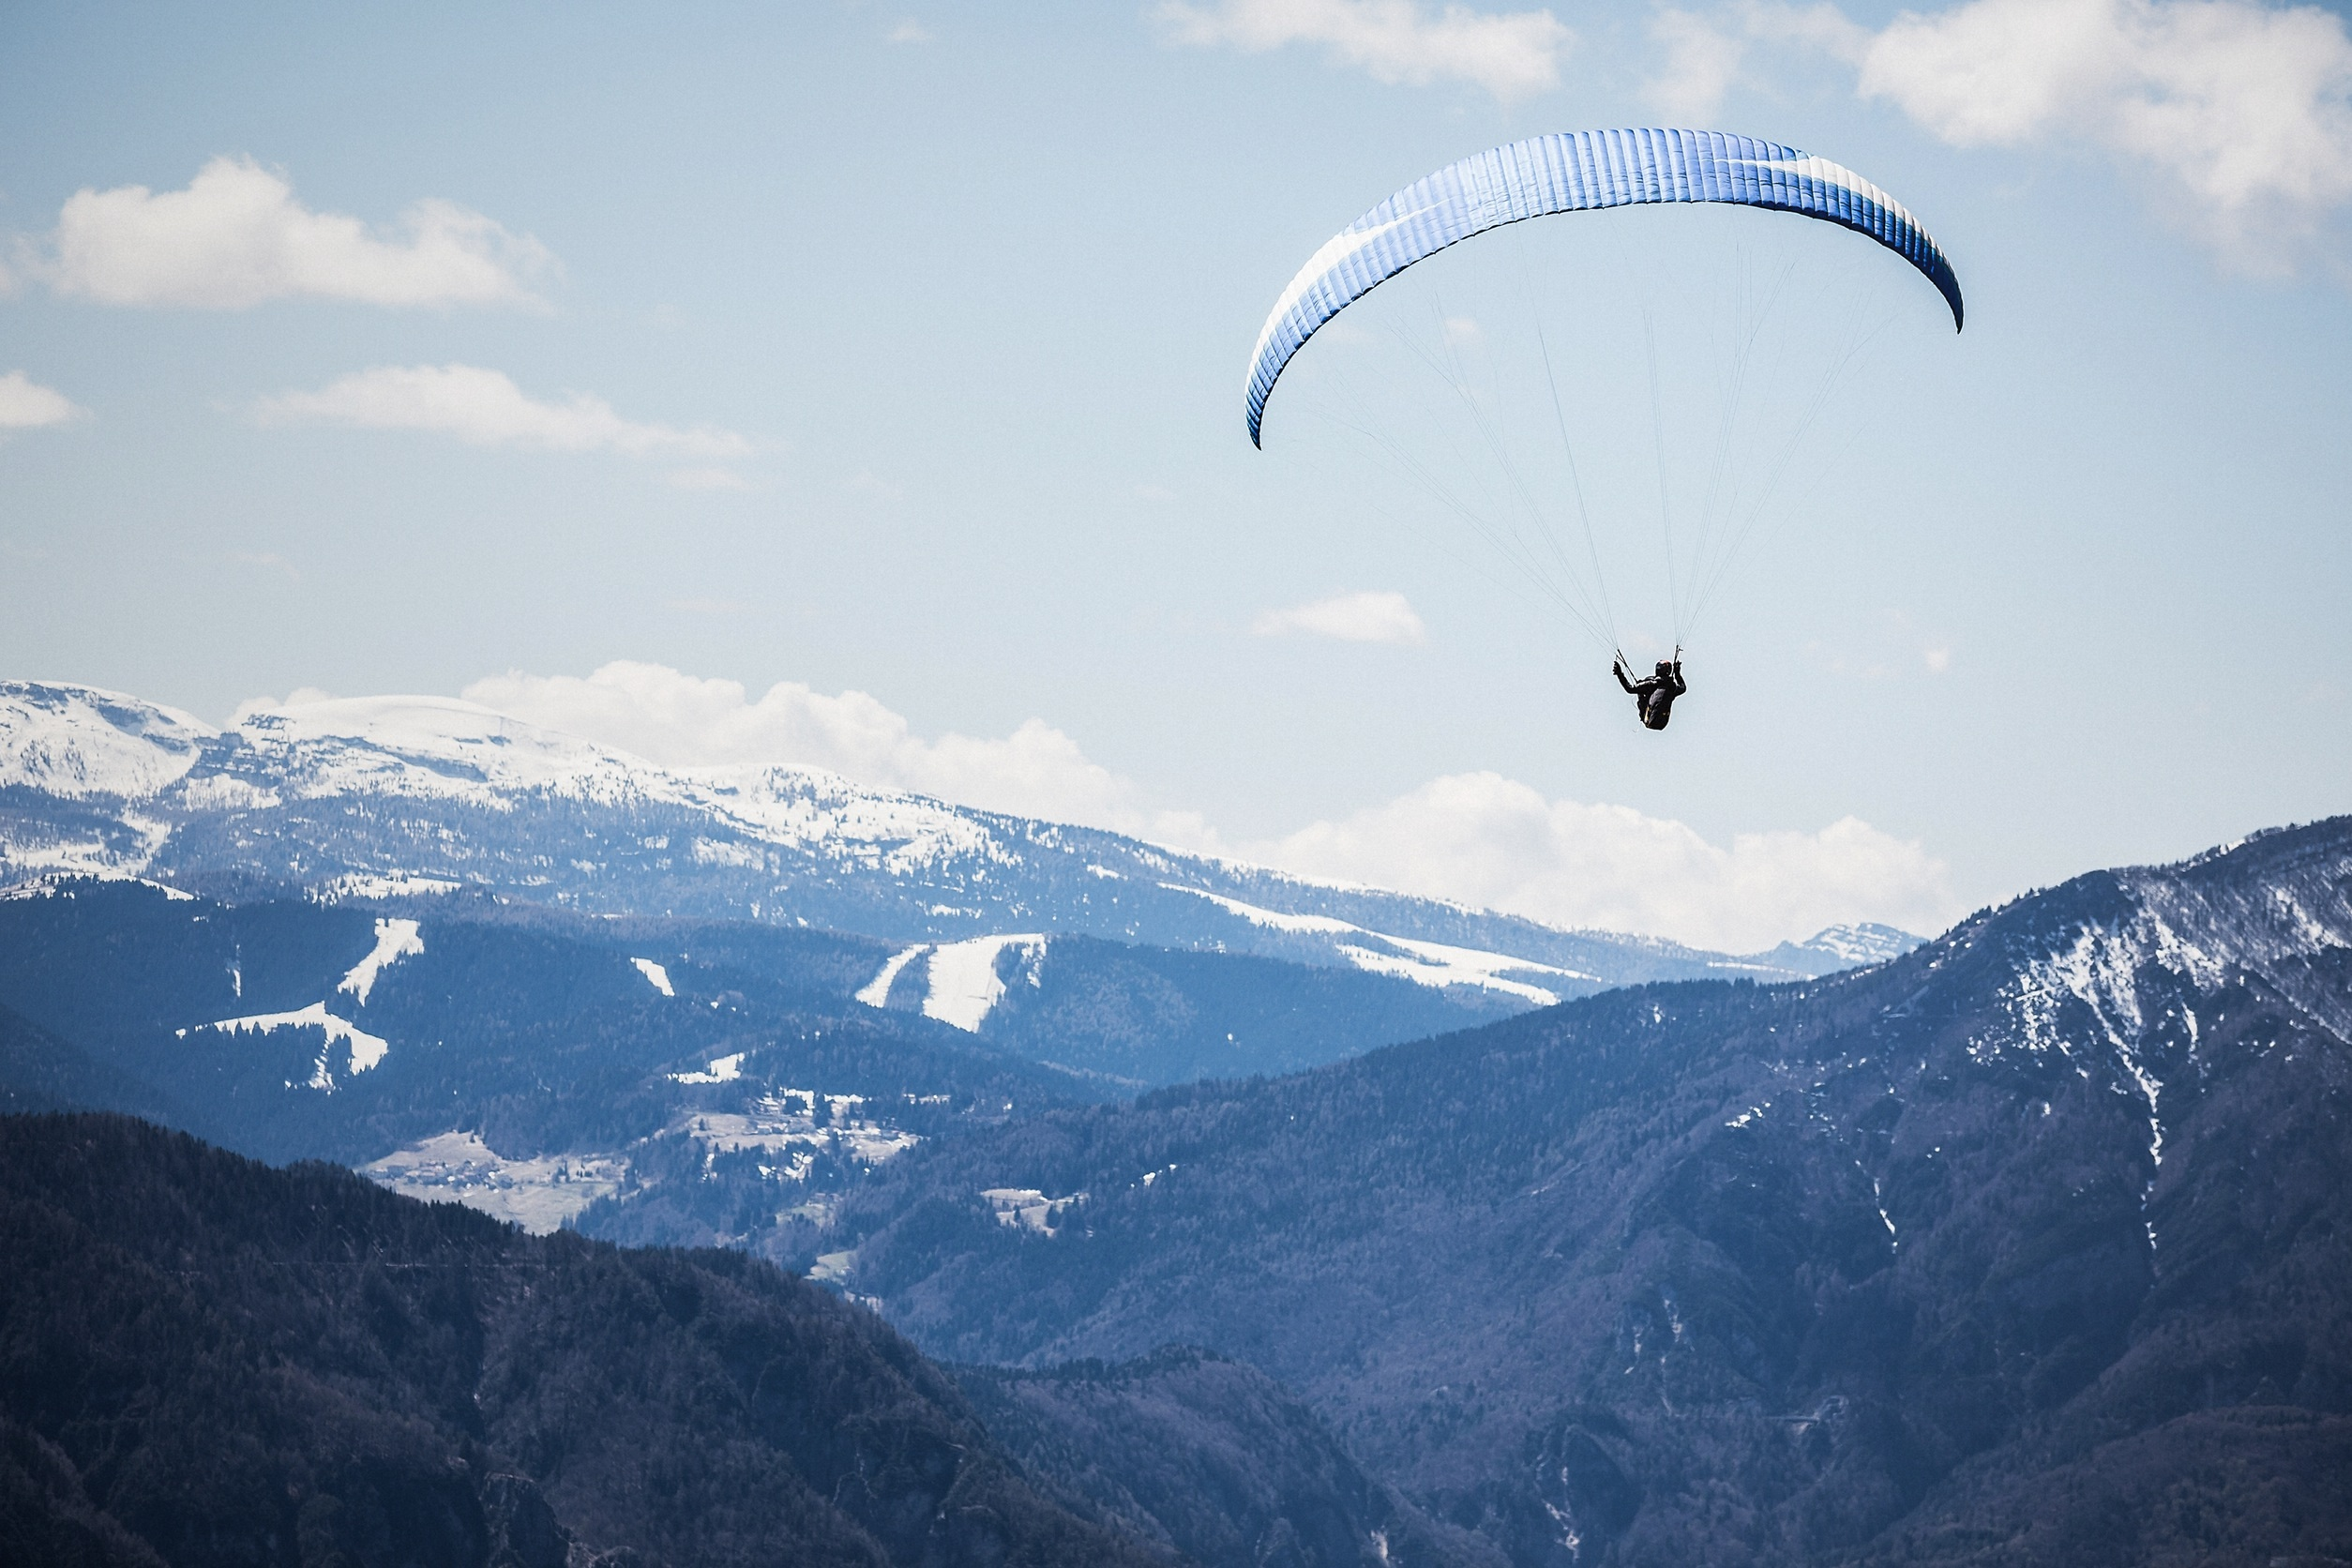 Organize your skydiving company